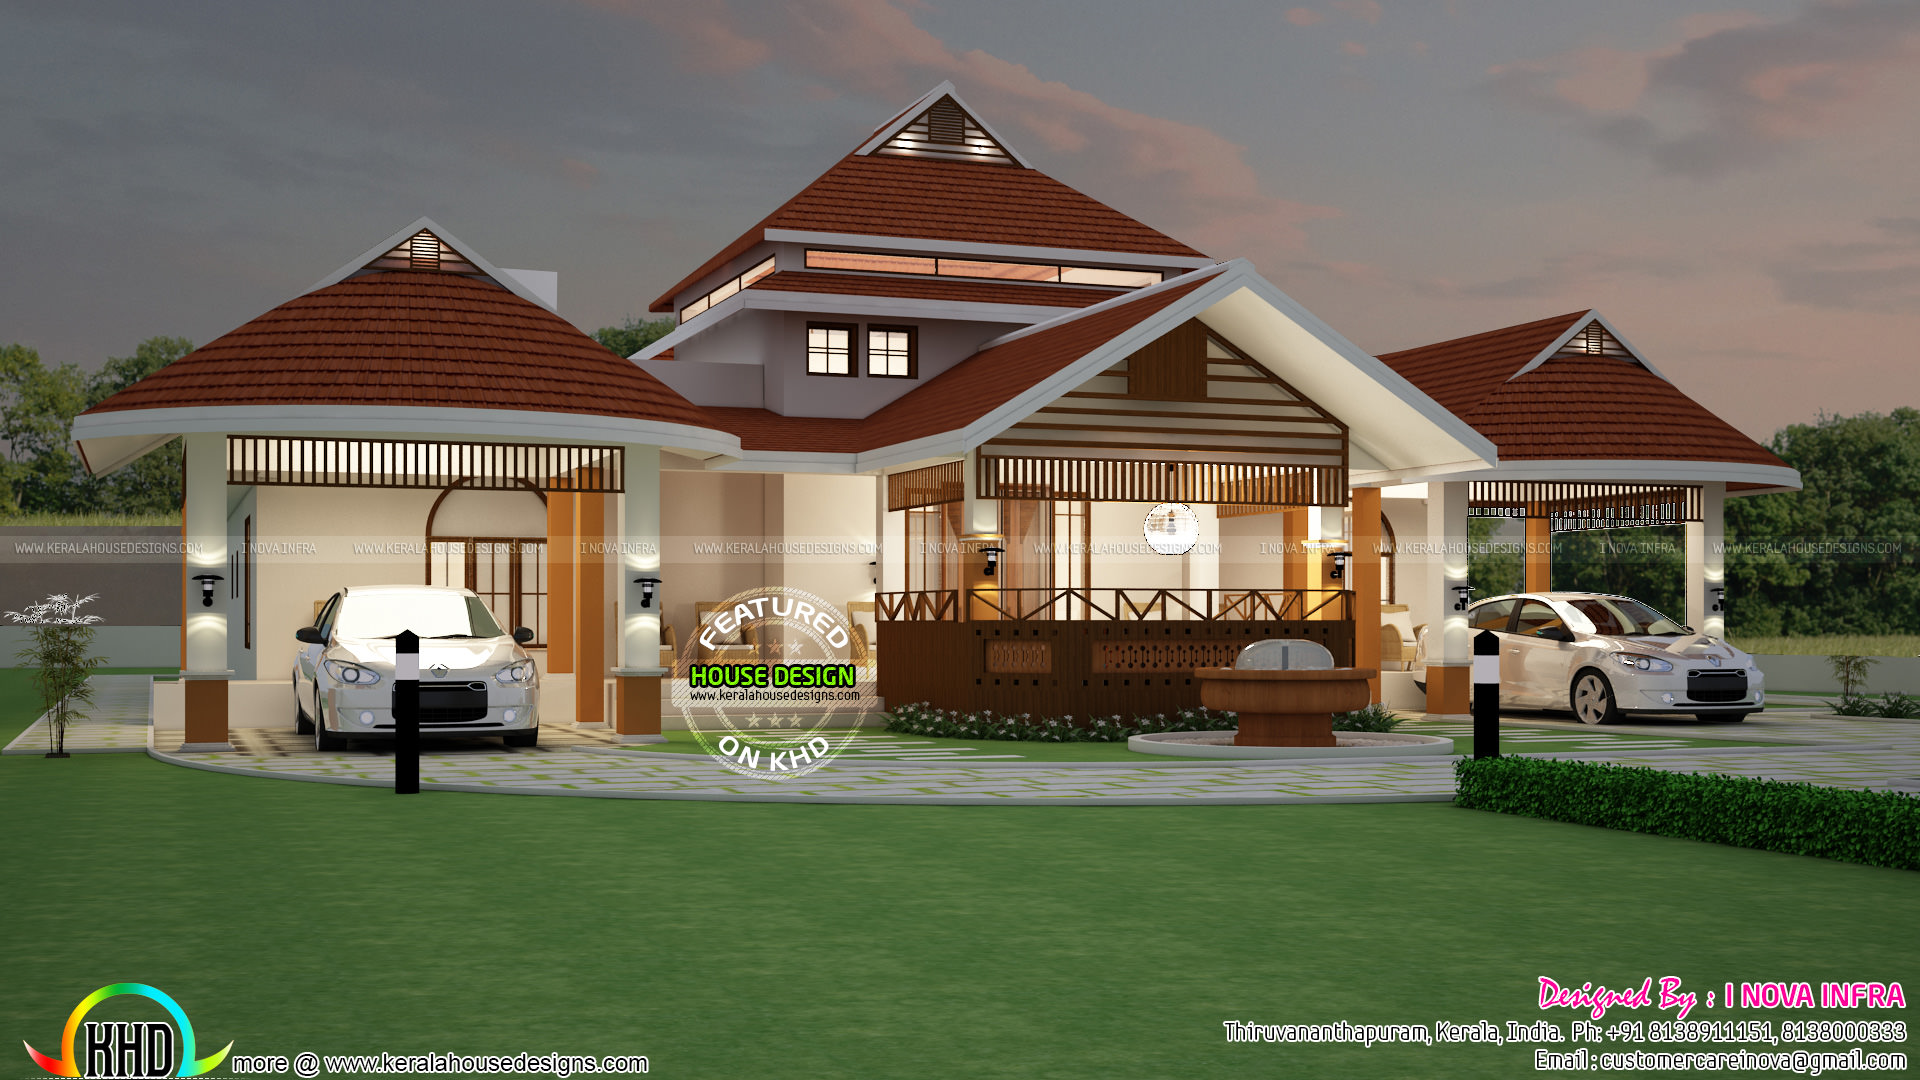 Big and beautiful kerala home design kerala home design for Big beautiful houses